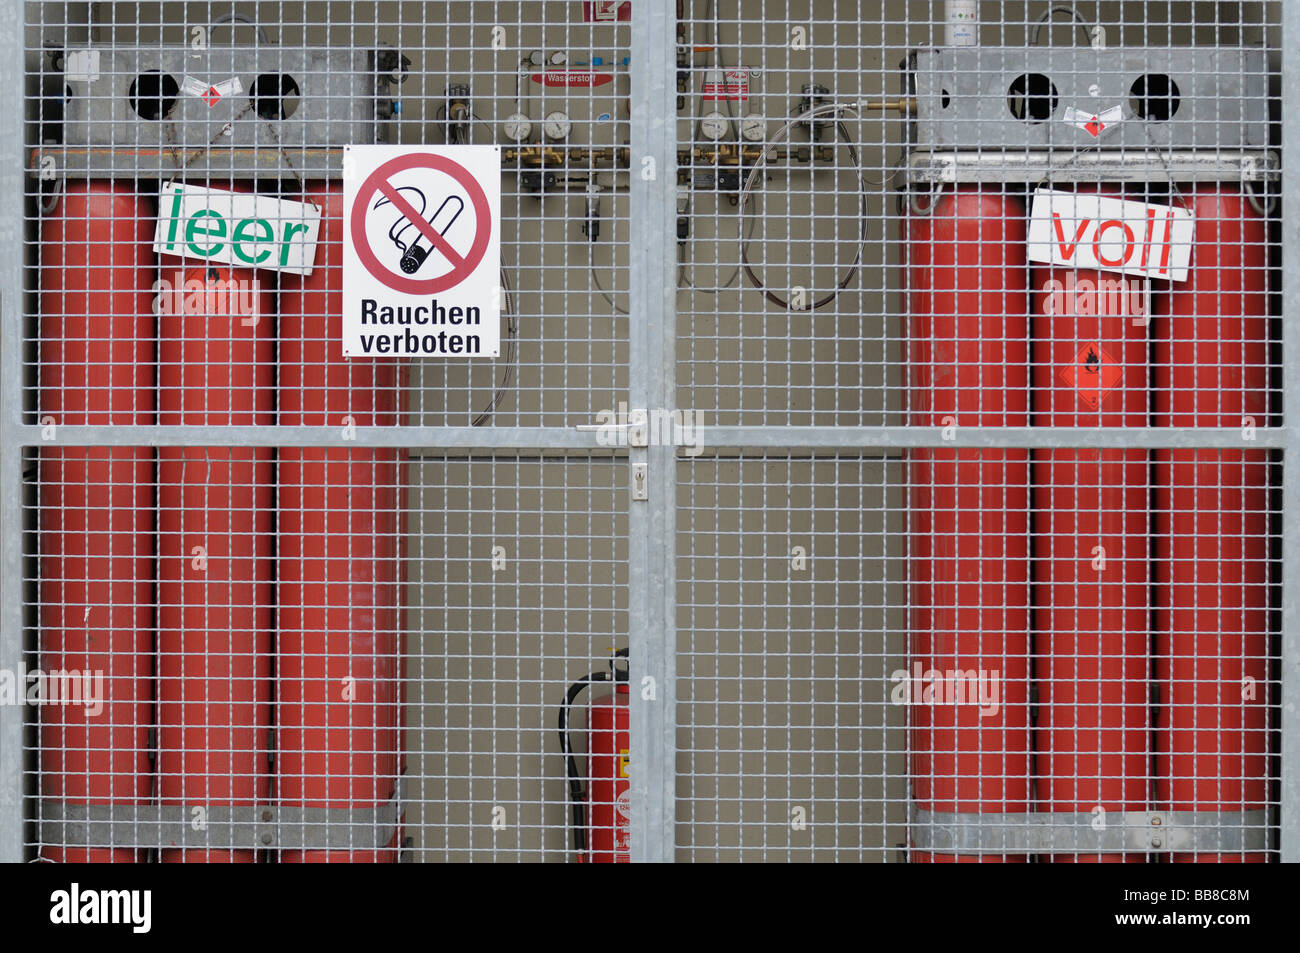 Hydrogen refilling station, empty and full red gas bottles behind a protective wire grid, fittings and gauges, prohibition - Stock Image